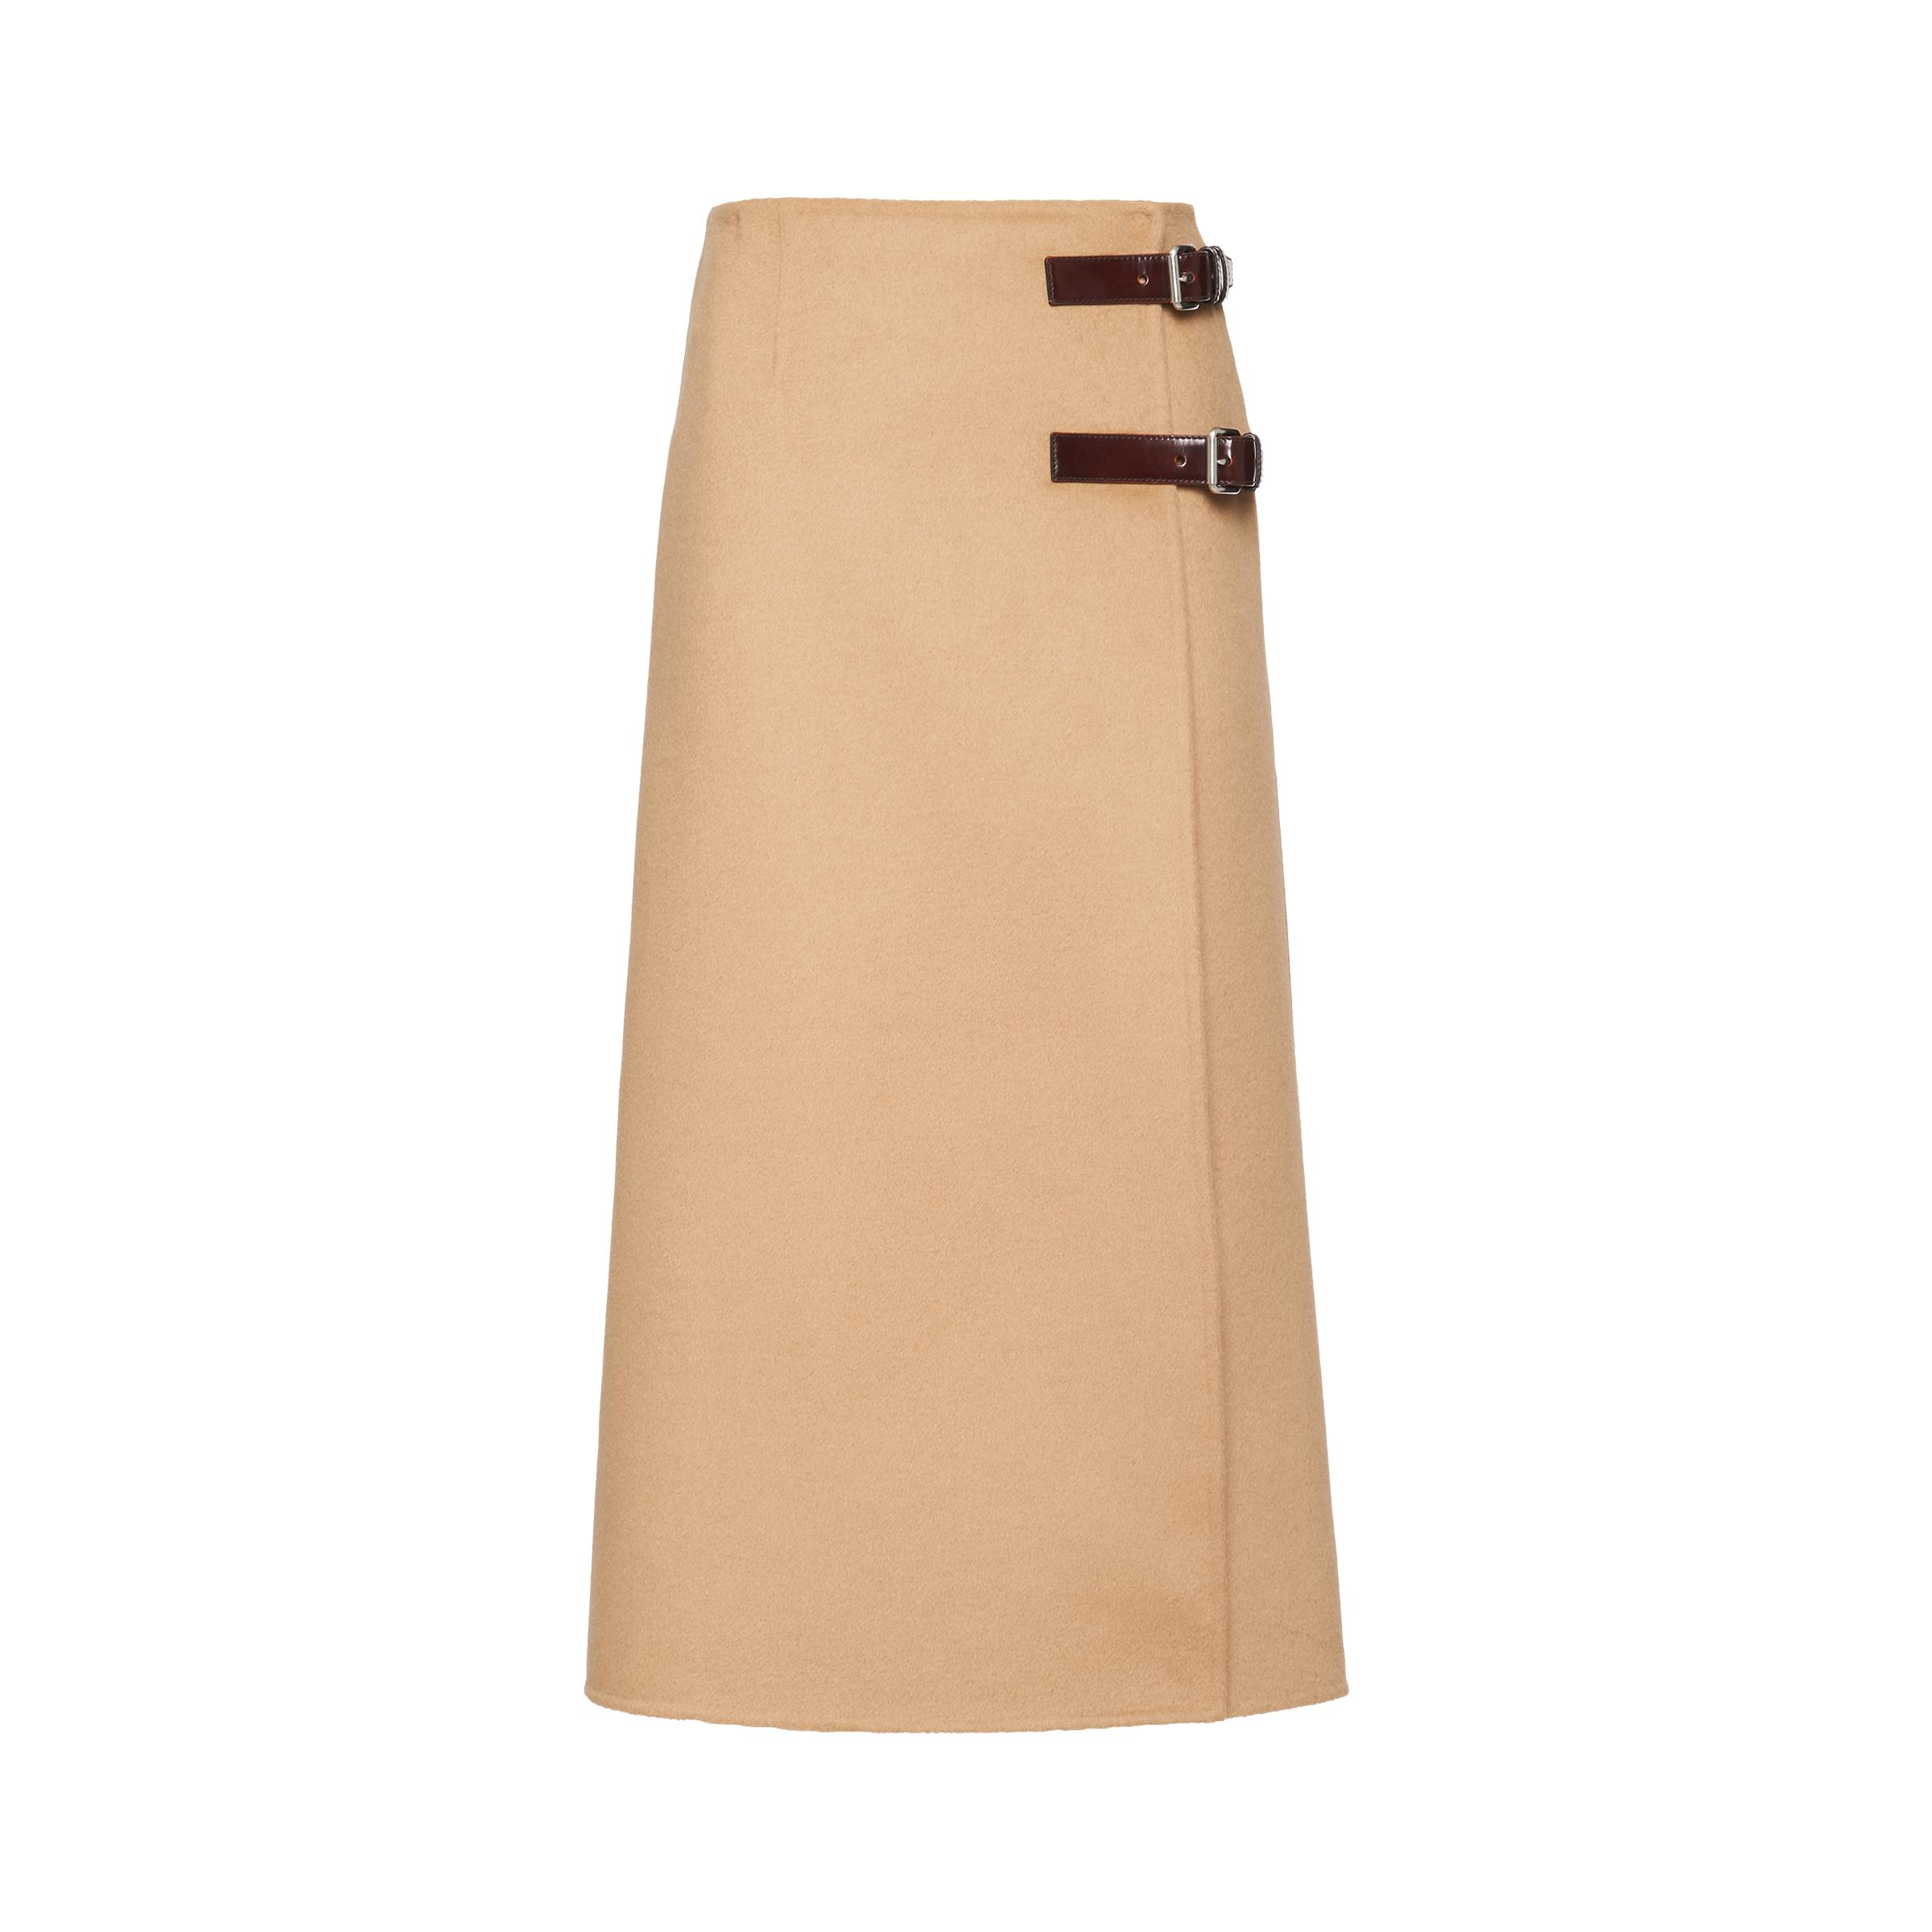 Wool And Cashmere Skirt Women Camel Brown